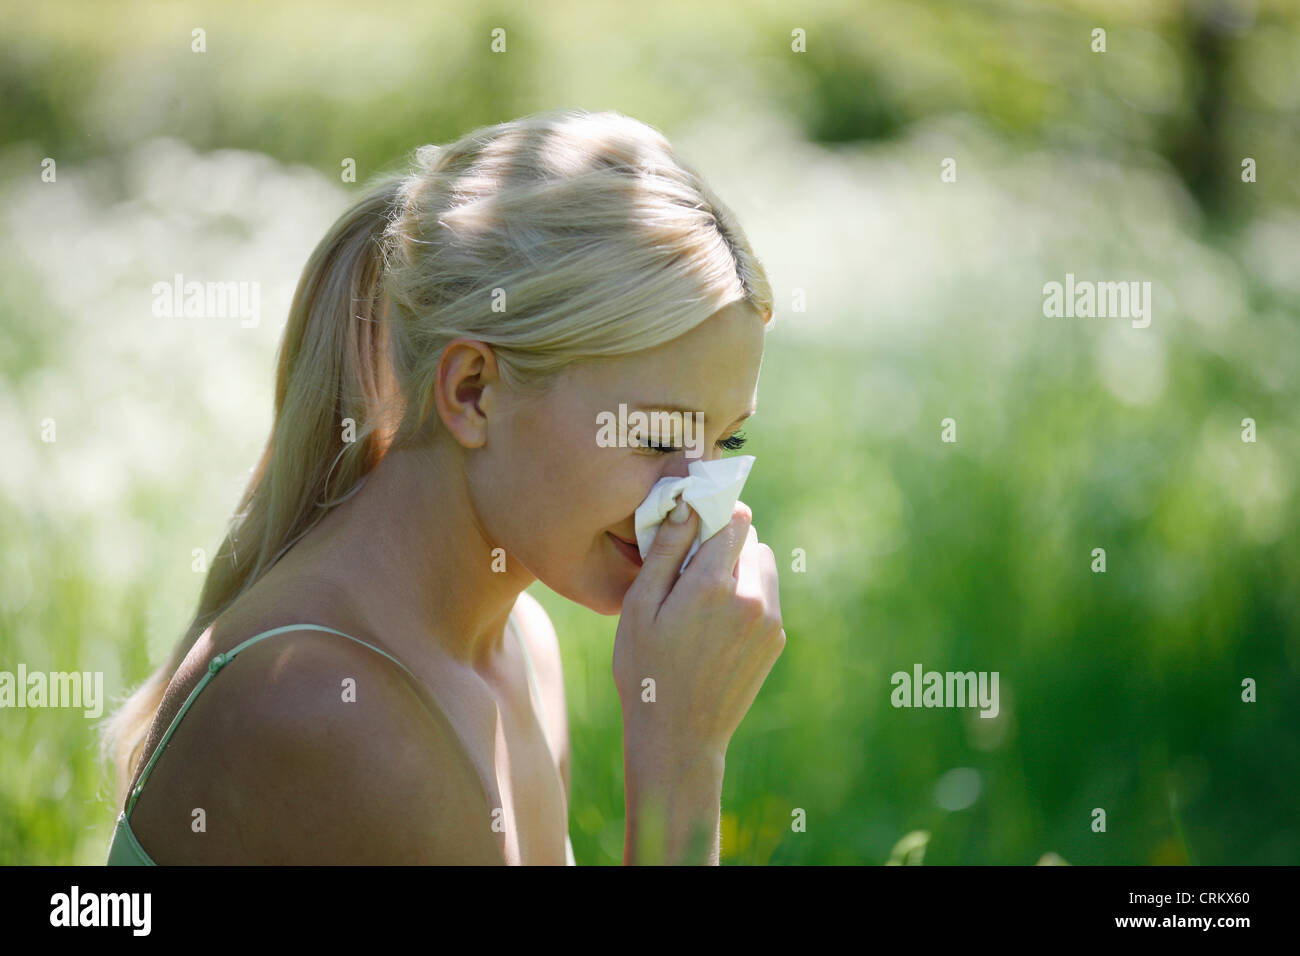 A young blonde woman sneezing into a tissue - Stock Image